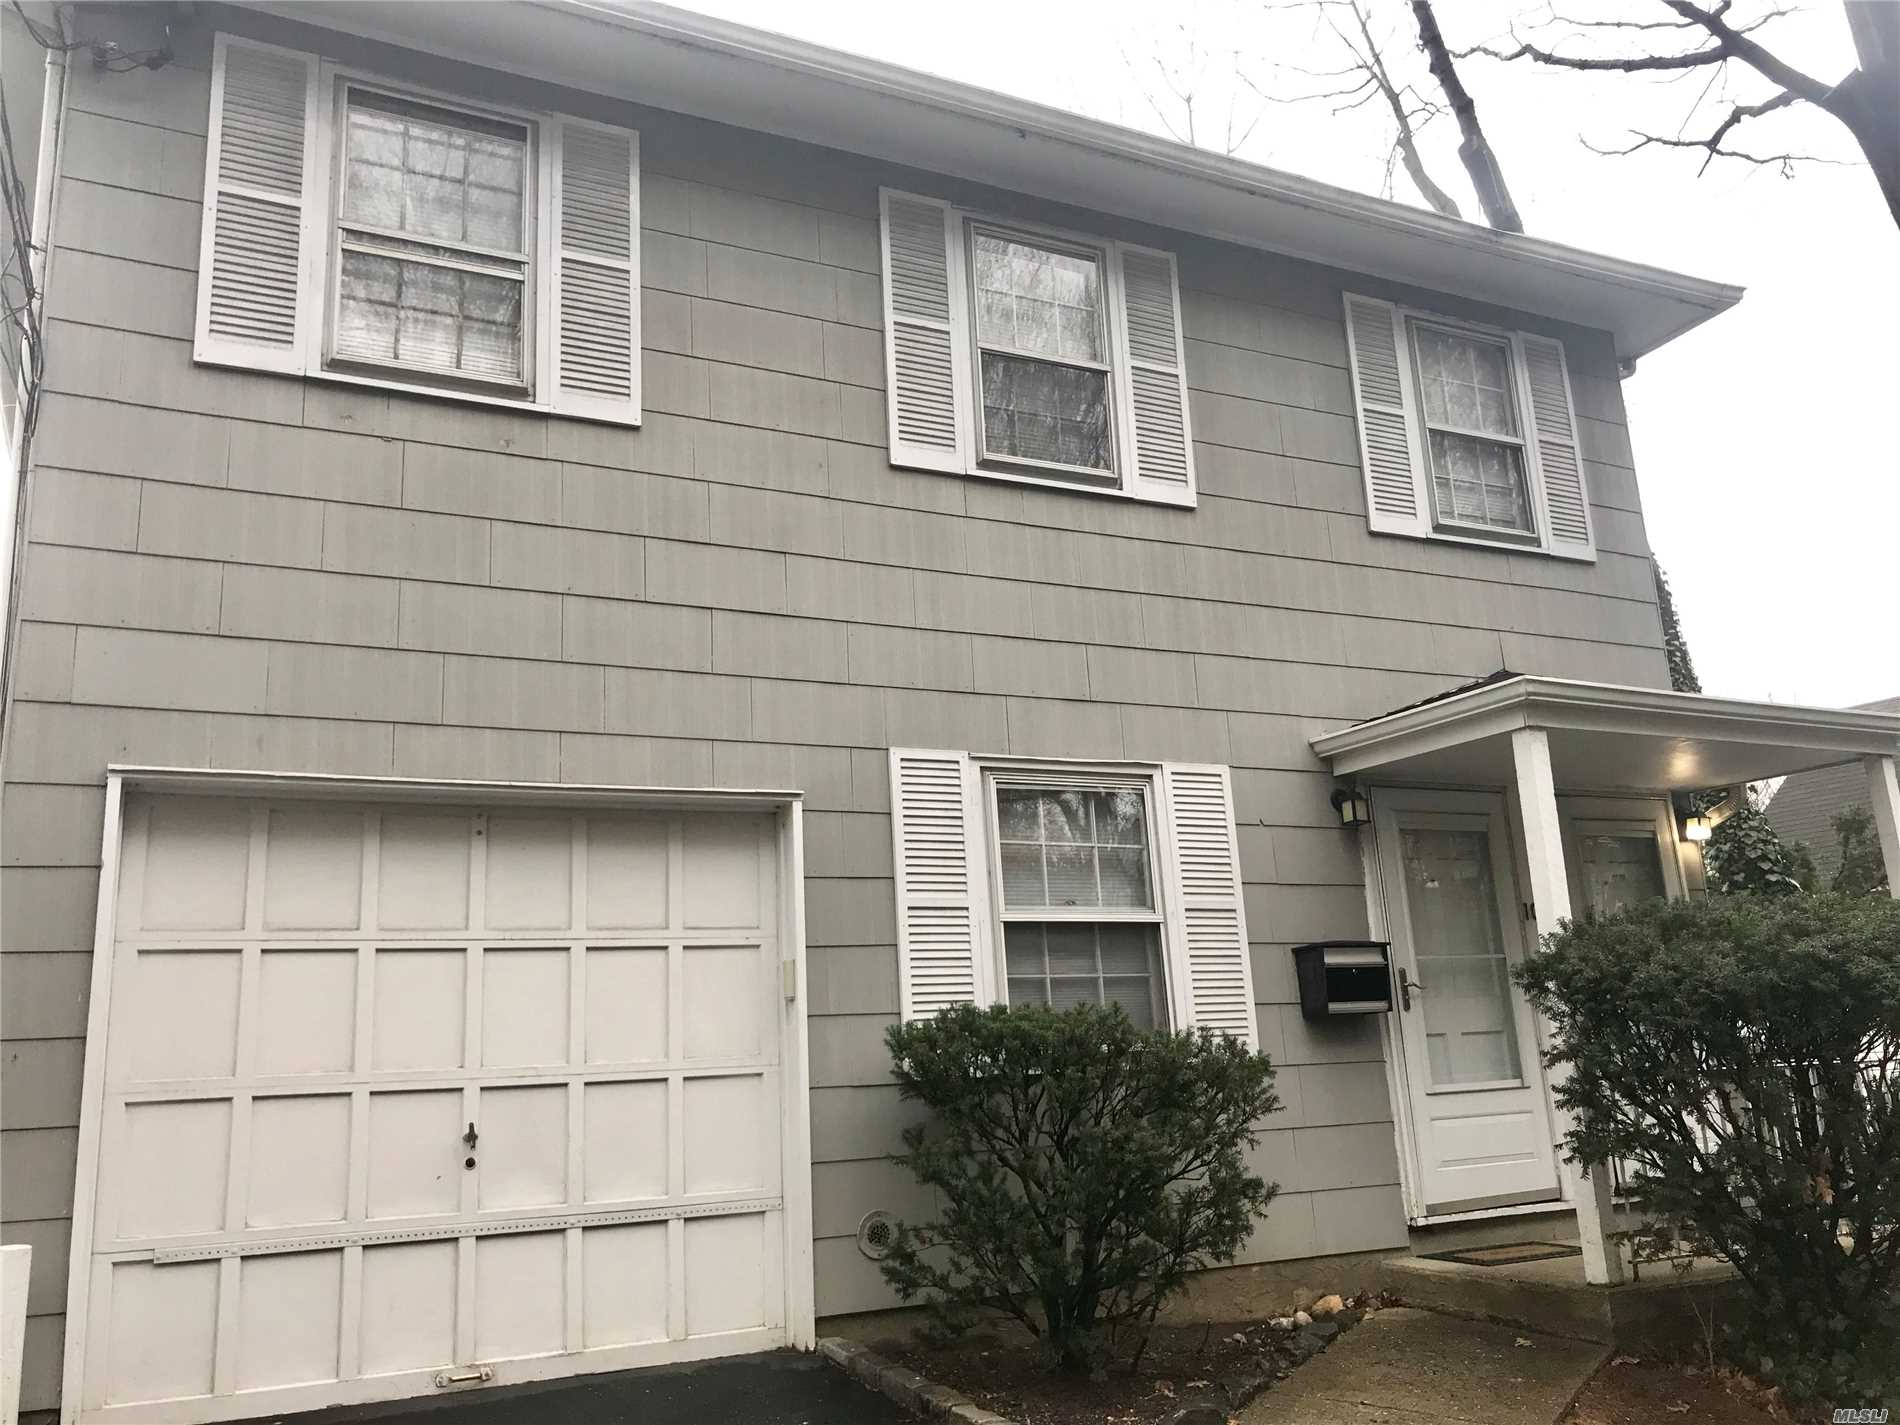 Sunfilled Newly Painted & Newly Carpeted Bright 2nd Floor Bedroom Plus Office Apt. Near Roslyn Village, Roslyn Schools, Offering Tons Of Space, Plus Extra Storage, Use Of Yard, Washer & Dryer. Excellent Condition.